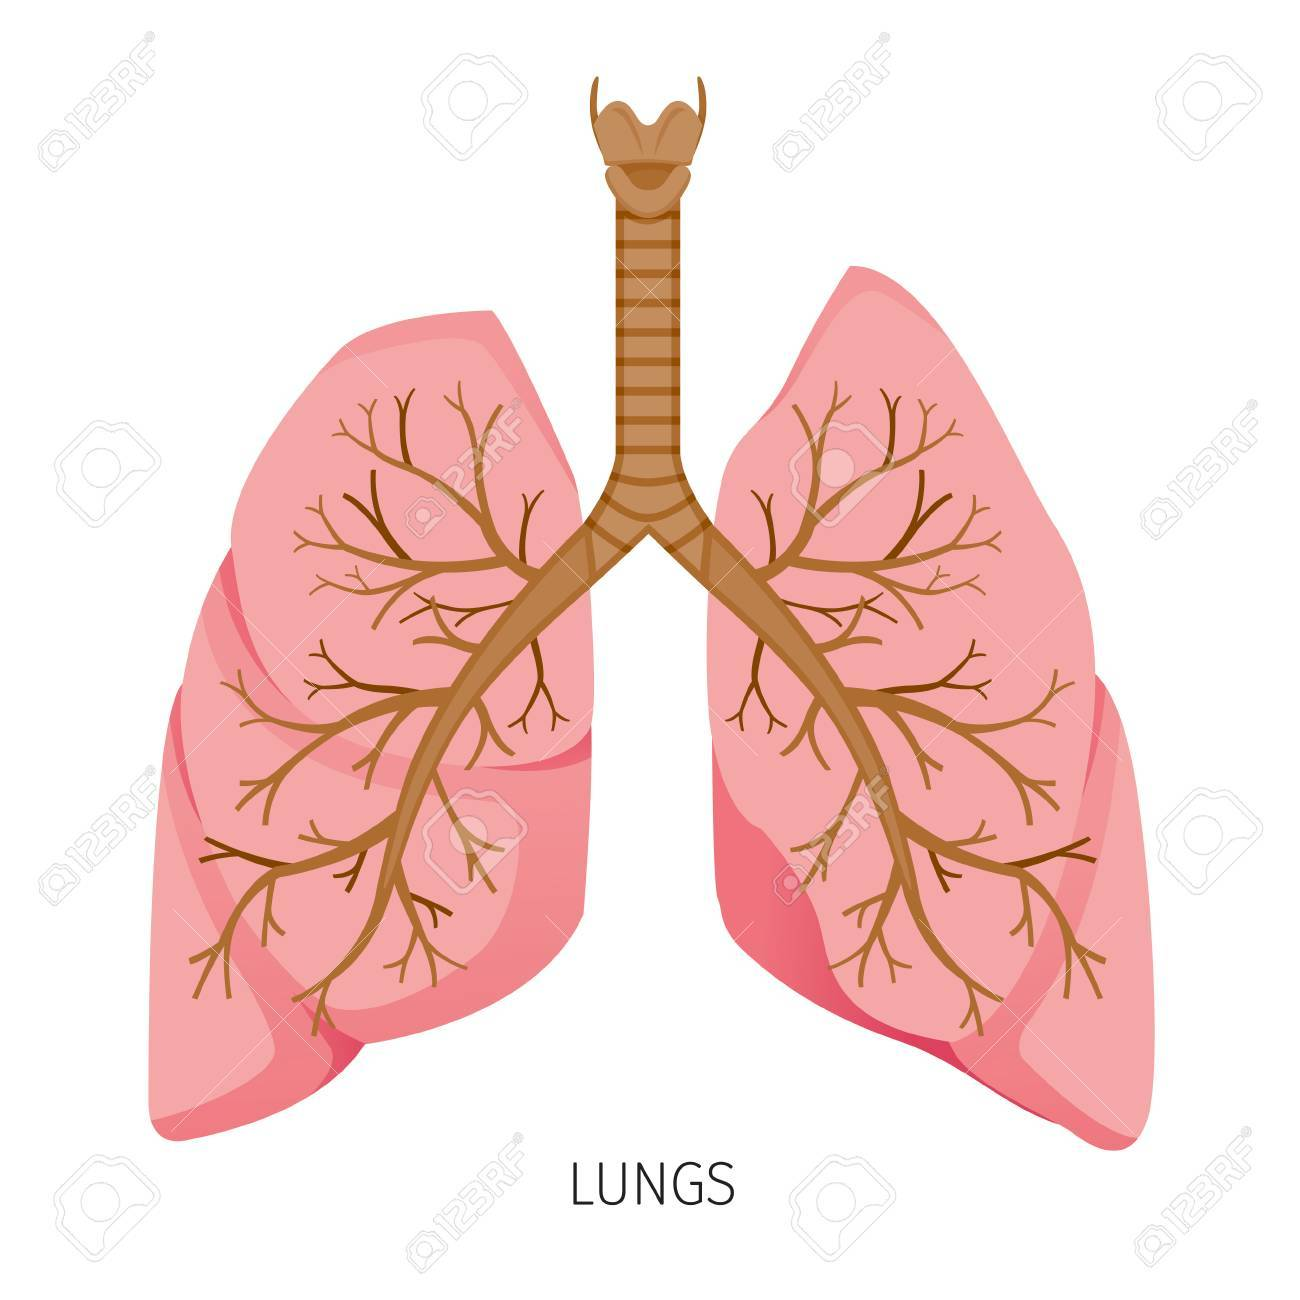 Lungs Human Internal Organ Diagram Physiology Structure Medical